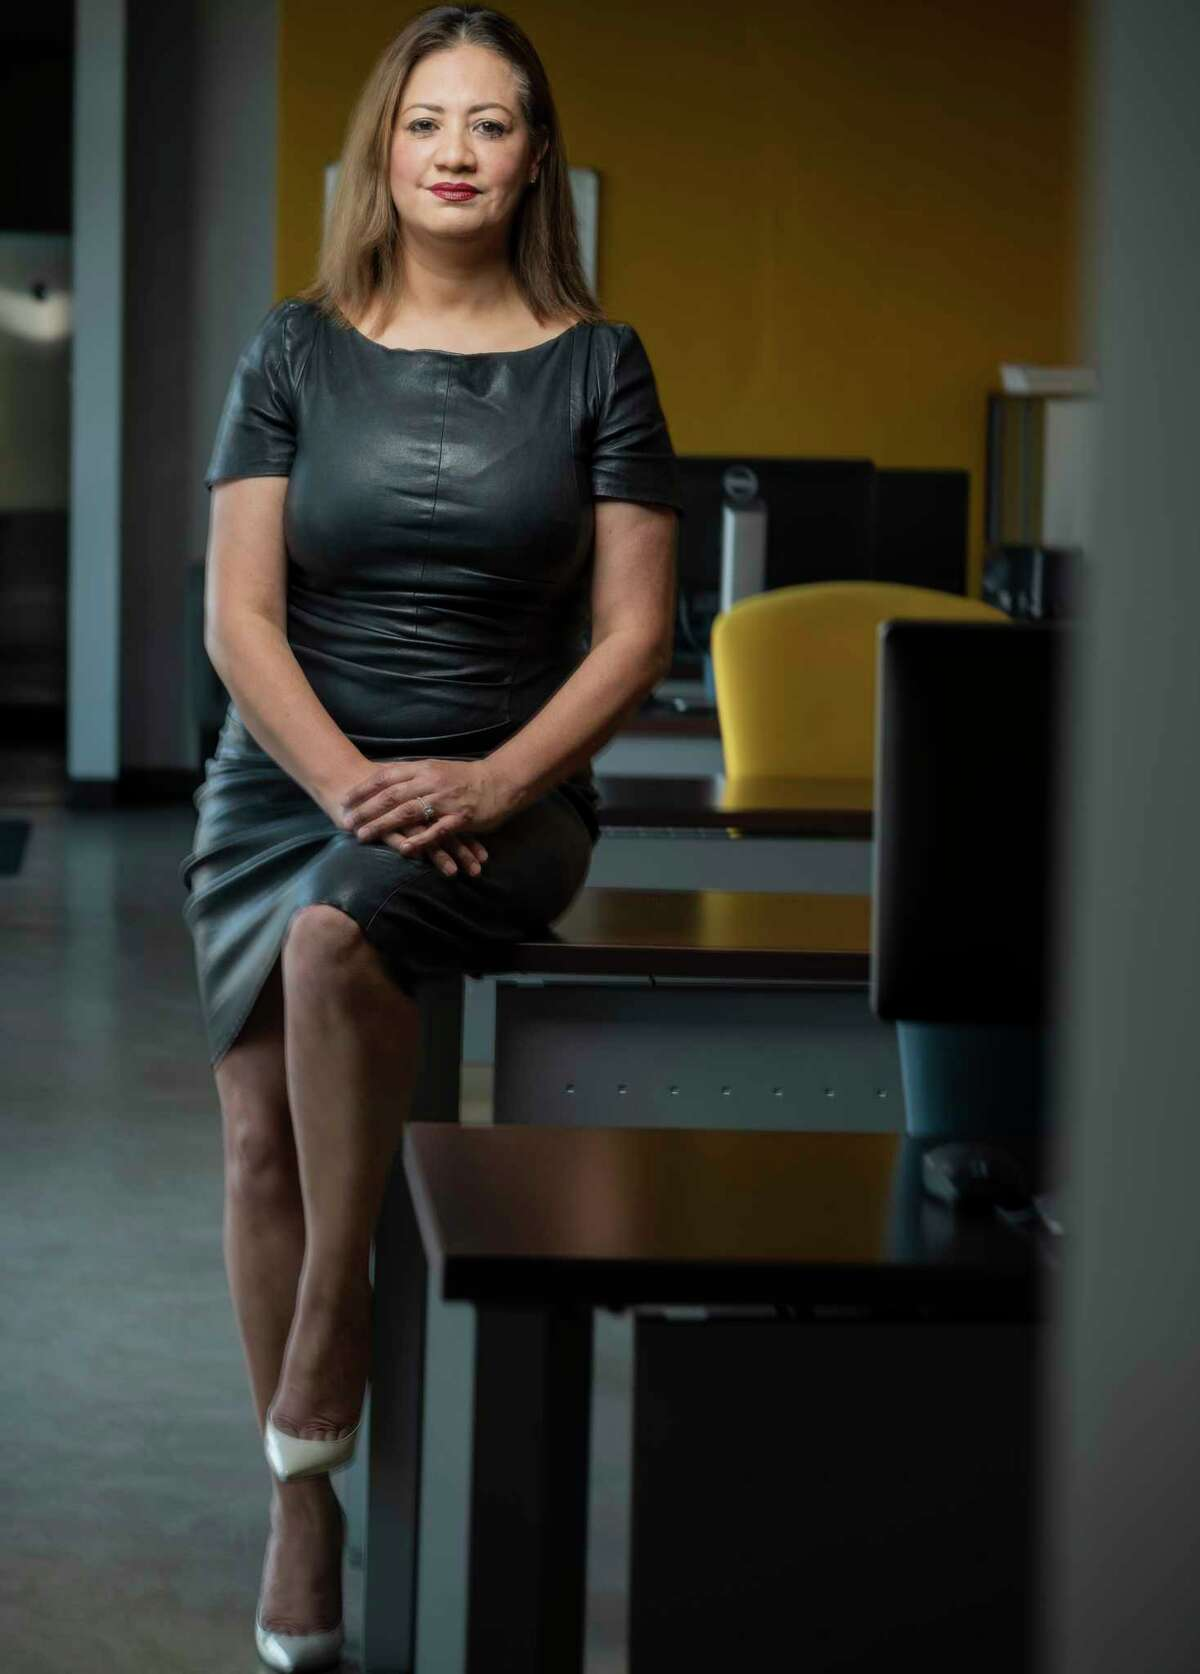 Janie Gonzalez is the founder of Webhead a cyberasecurity company based in San Antonio and a trustee at CPS Energy.